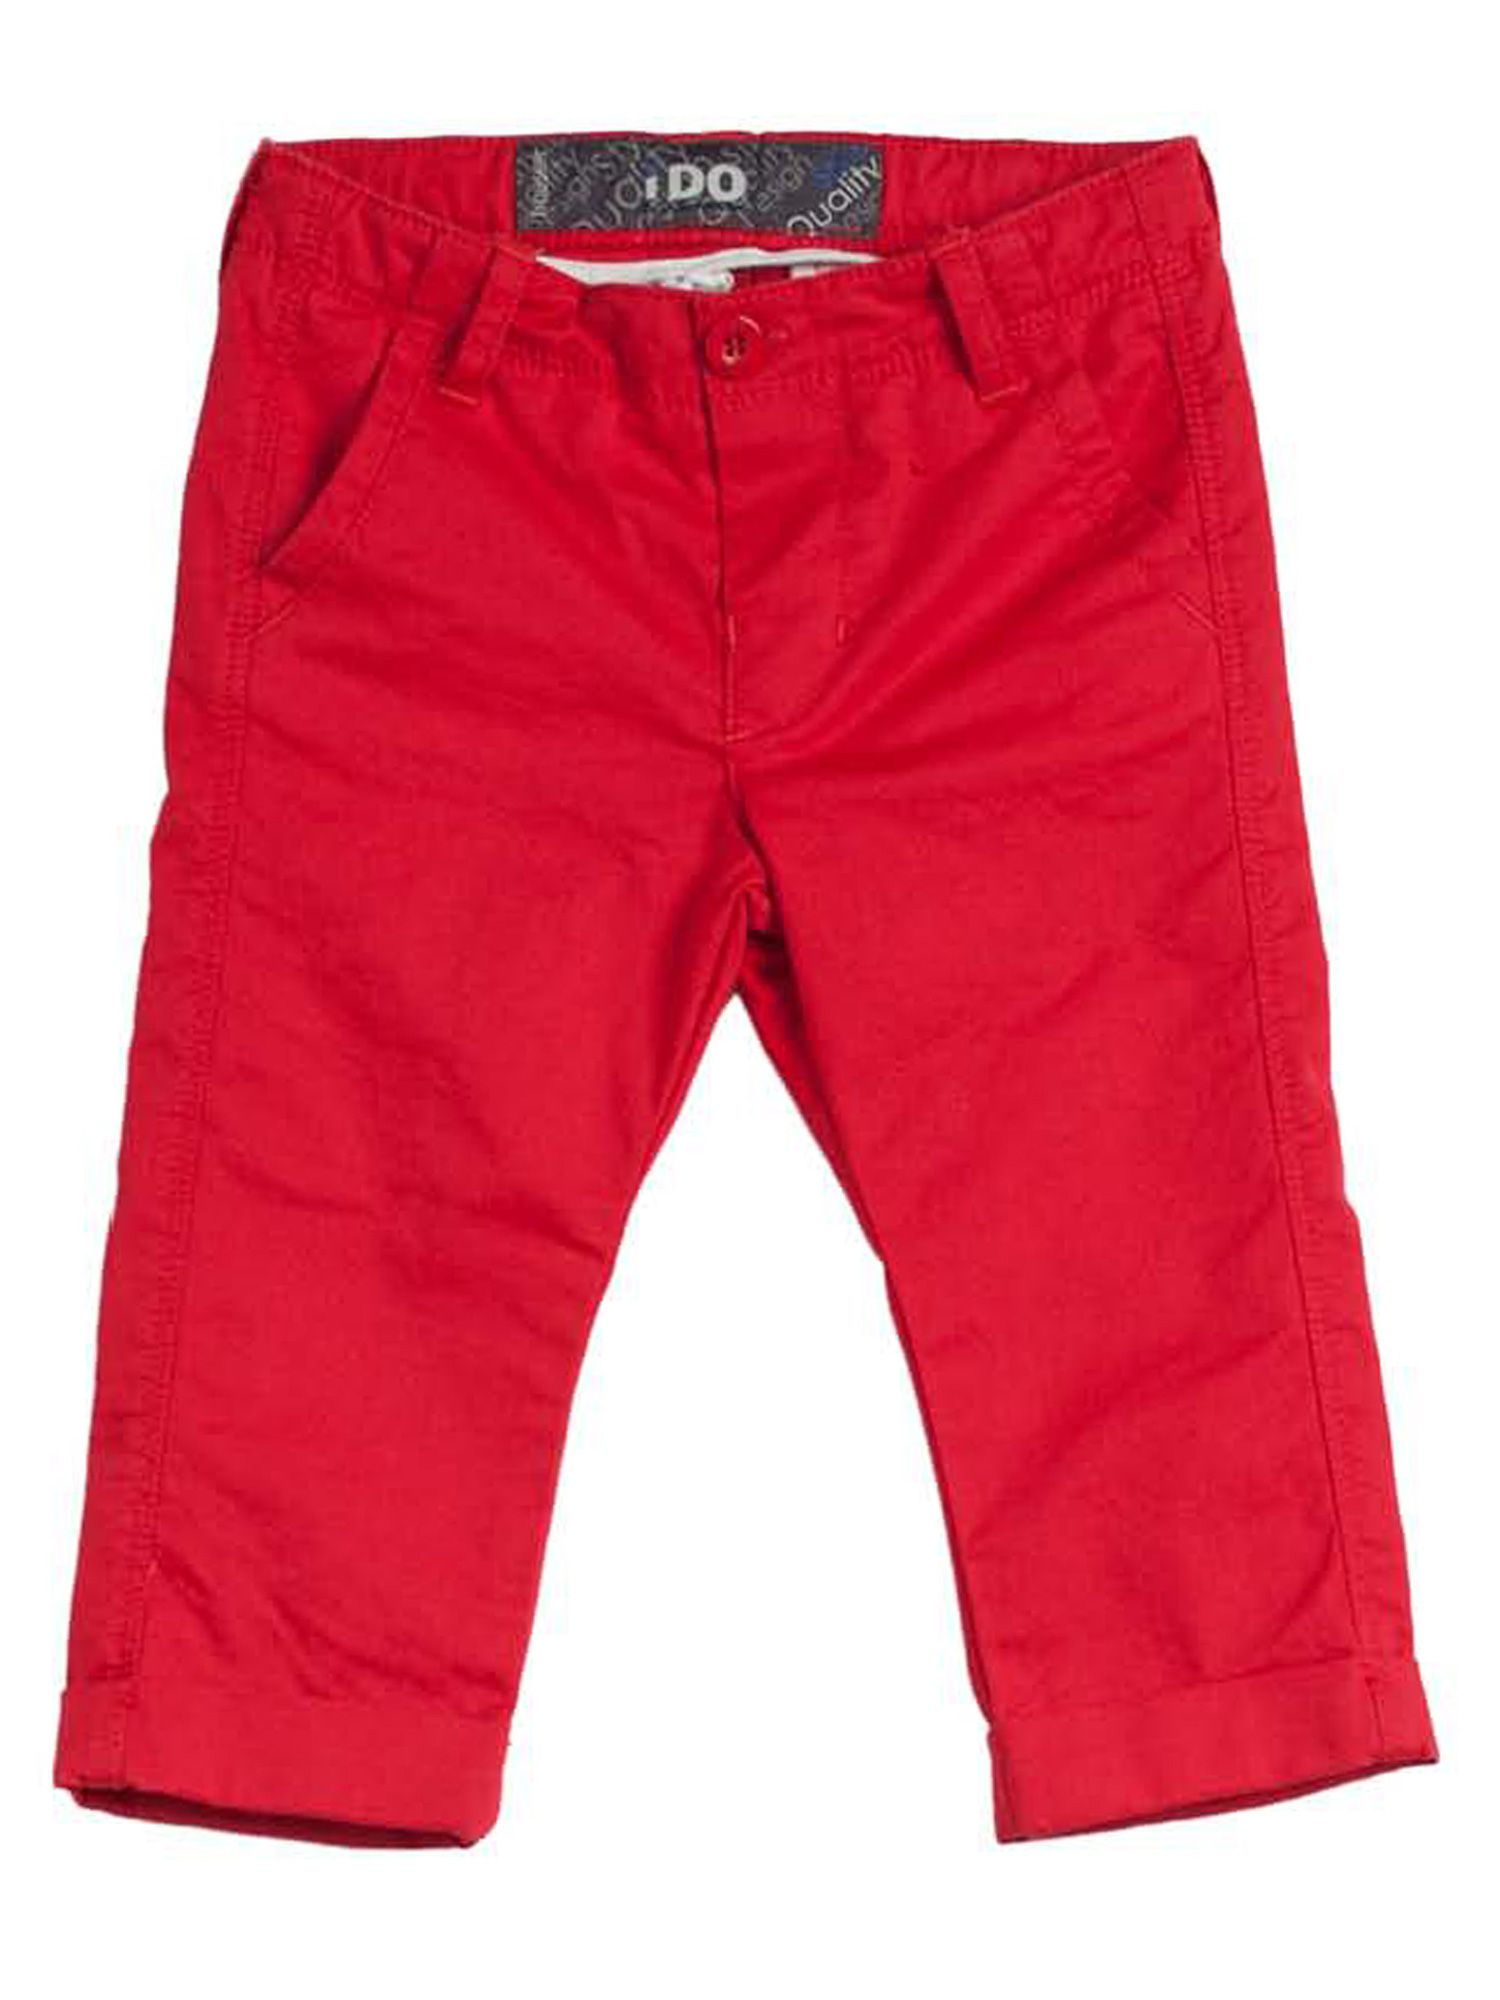 Boys stretchy basic trouser